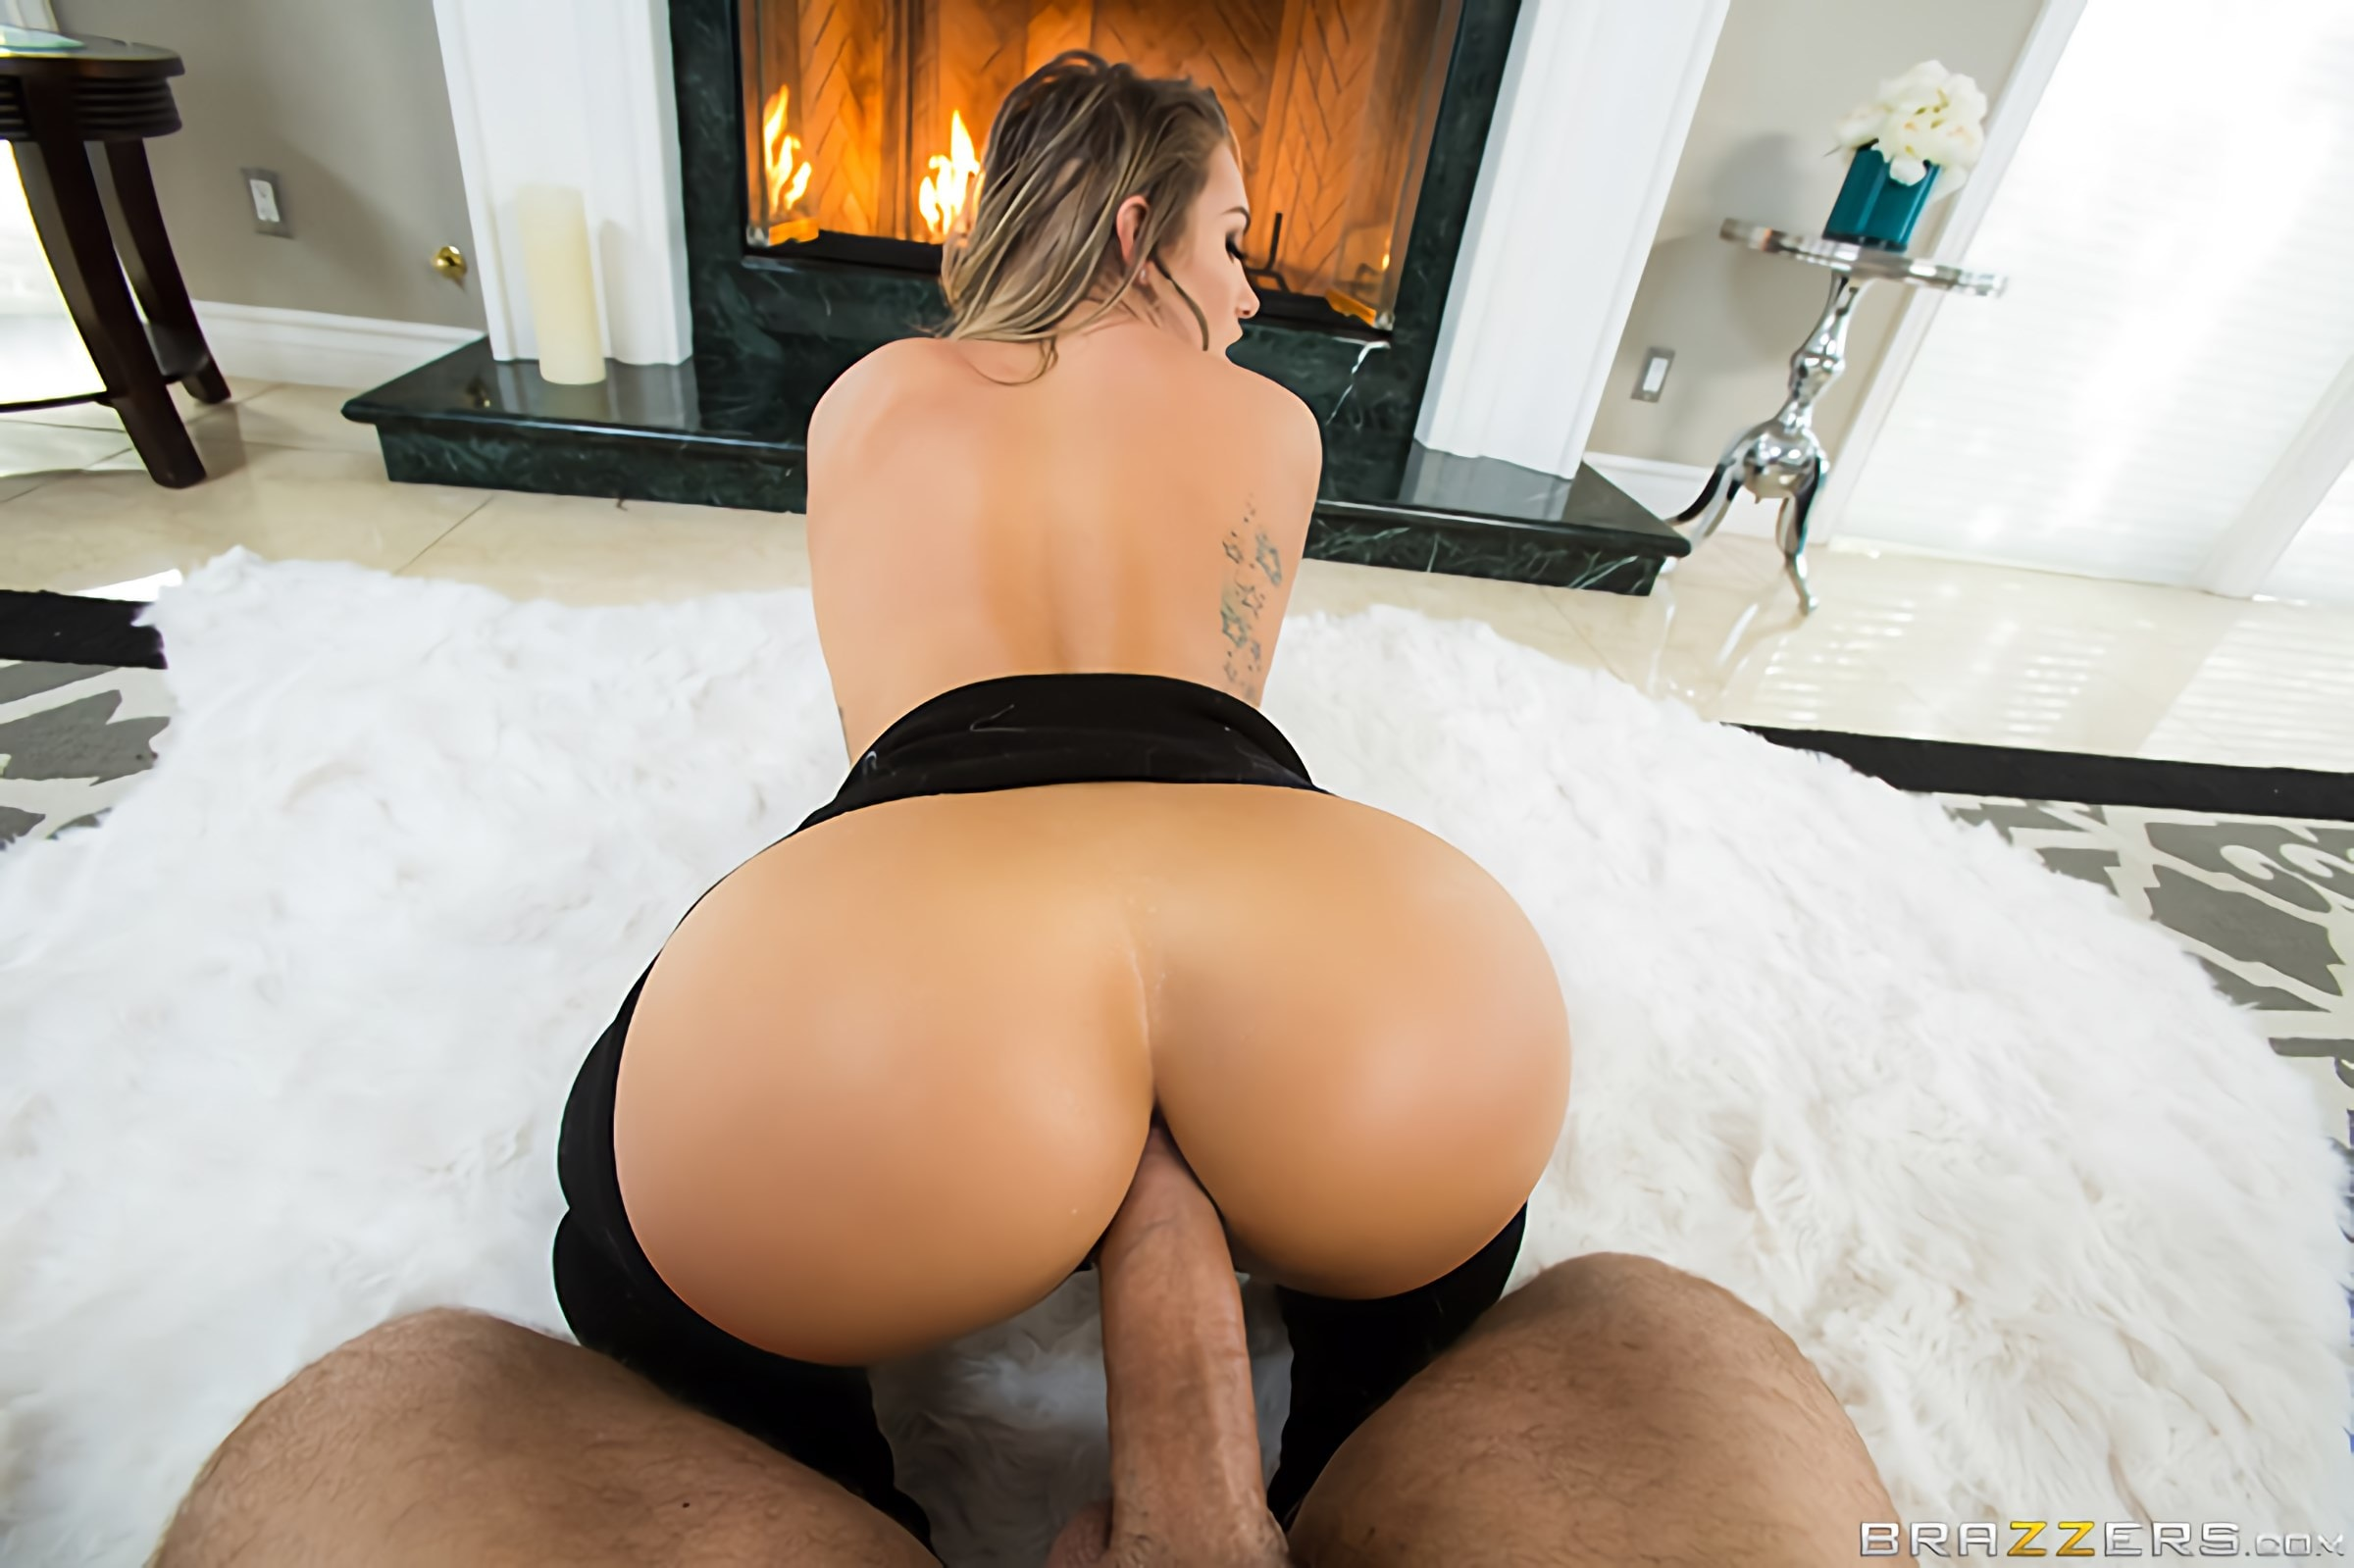 Brazzers 'Fireside Fap' starring Cali Carter (photo 4)